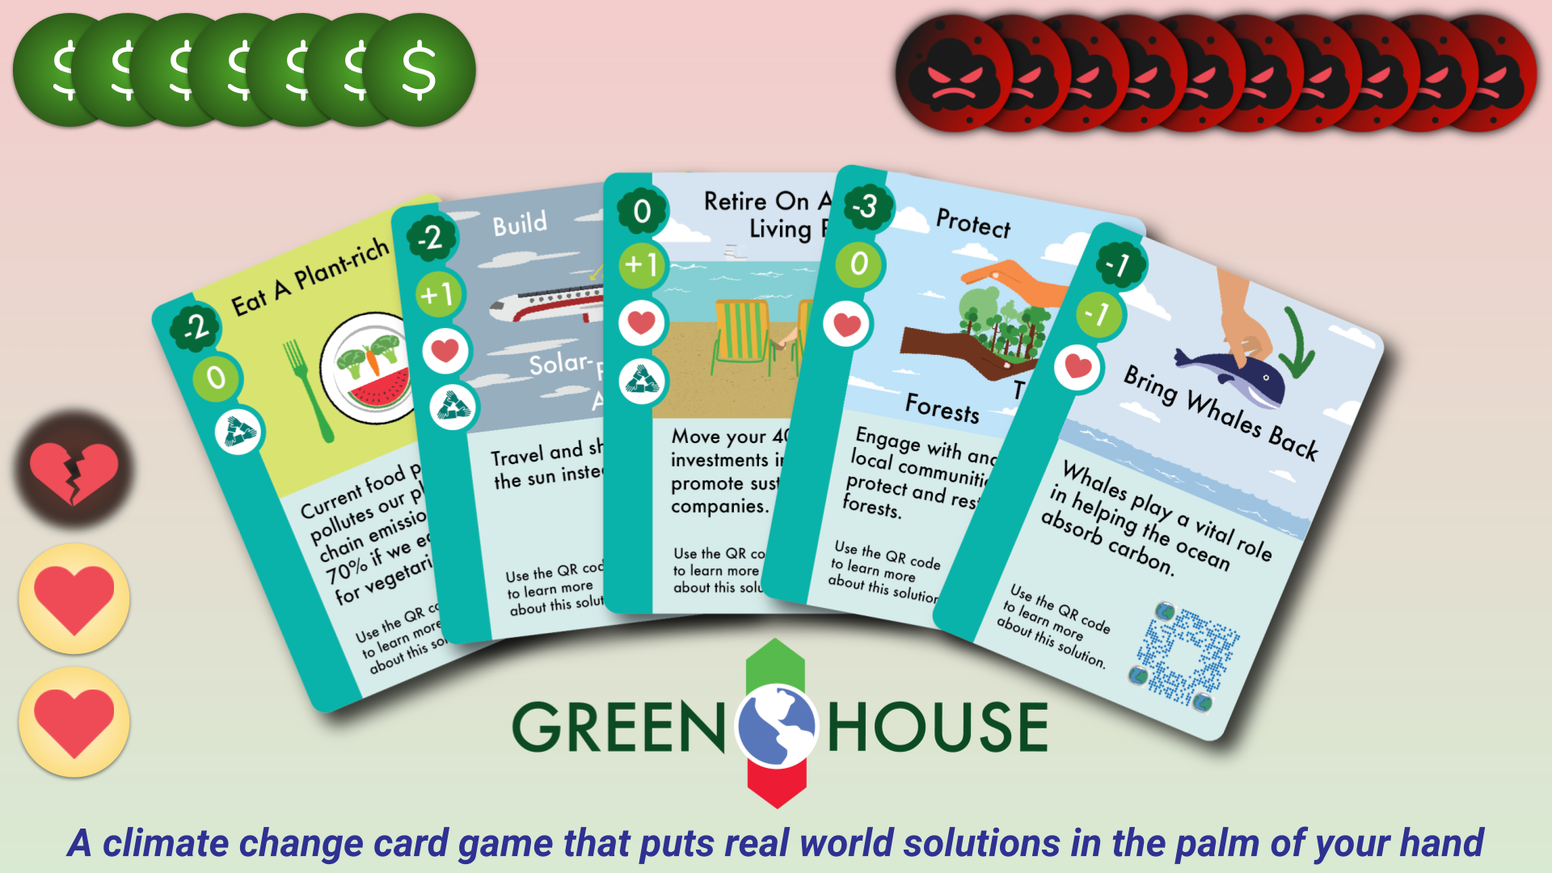 Play a cooperative climate change card game with real world solutions to save our planet.